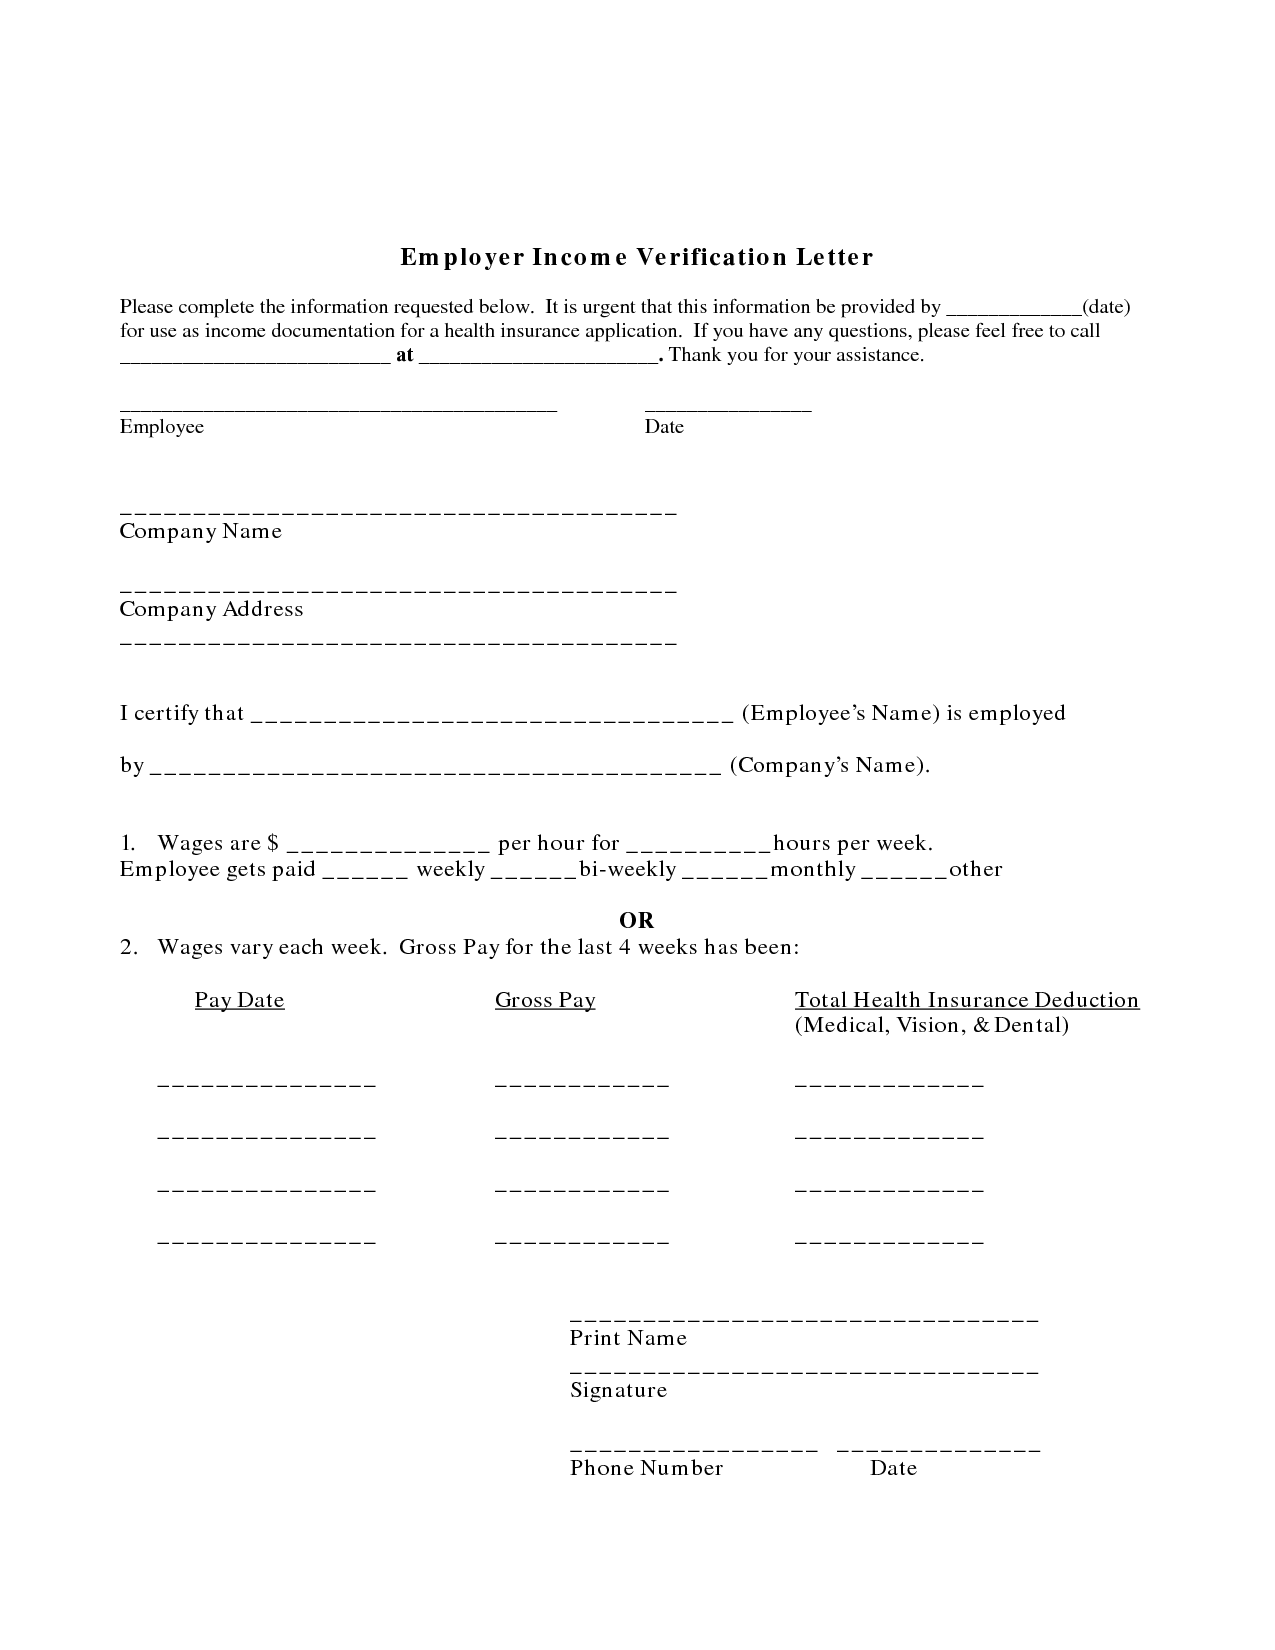 Example Employment Verification Letter Income – Example Employment Verification Letter